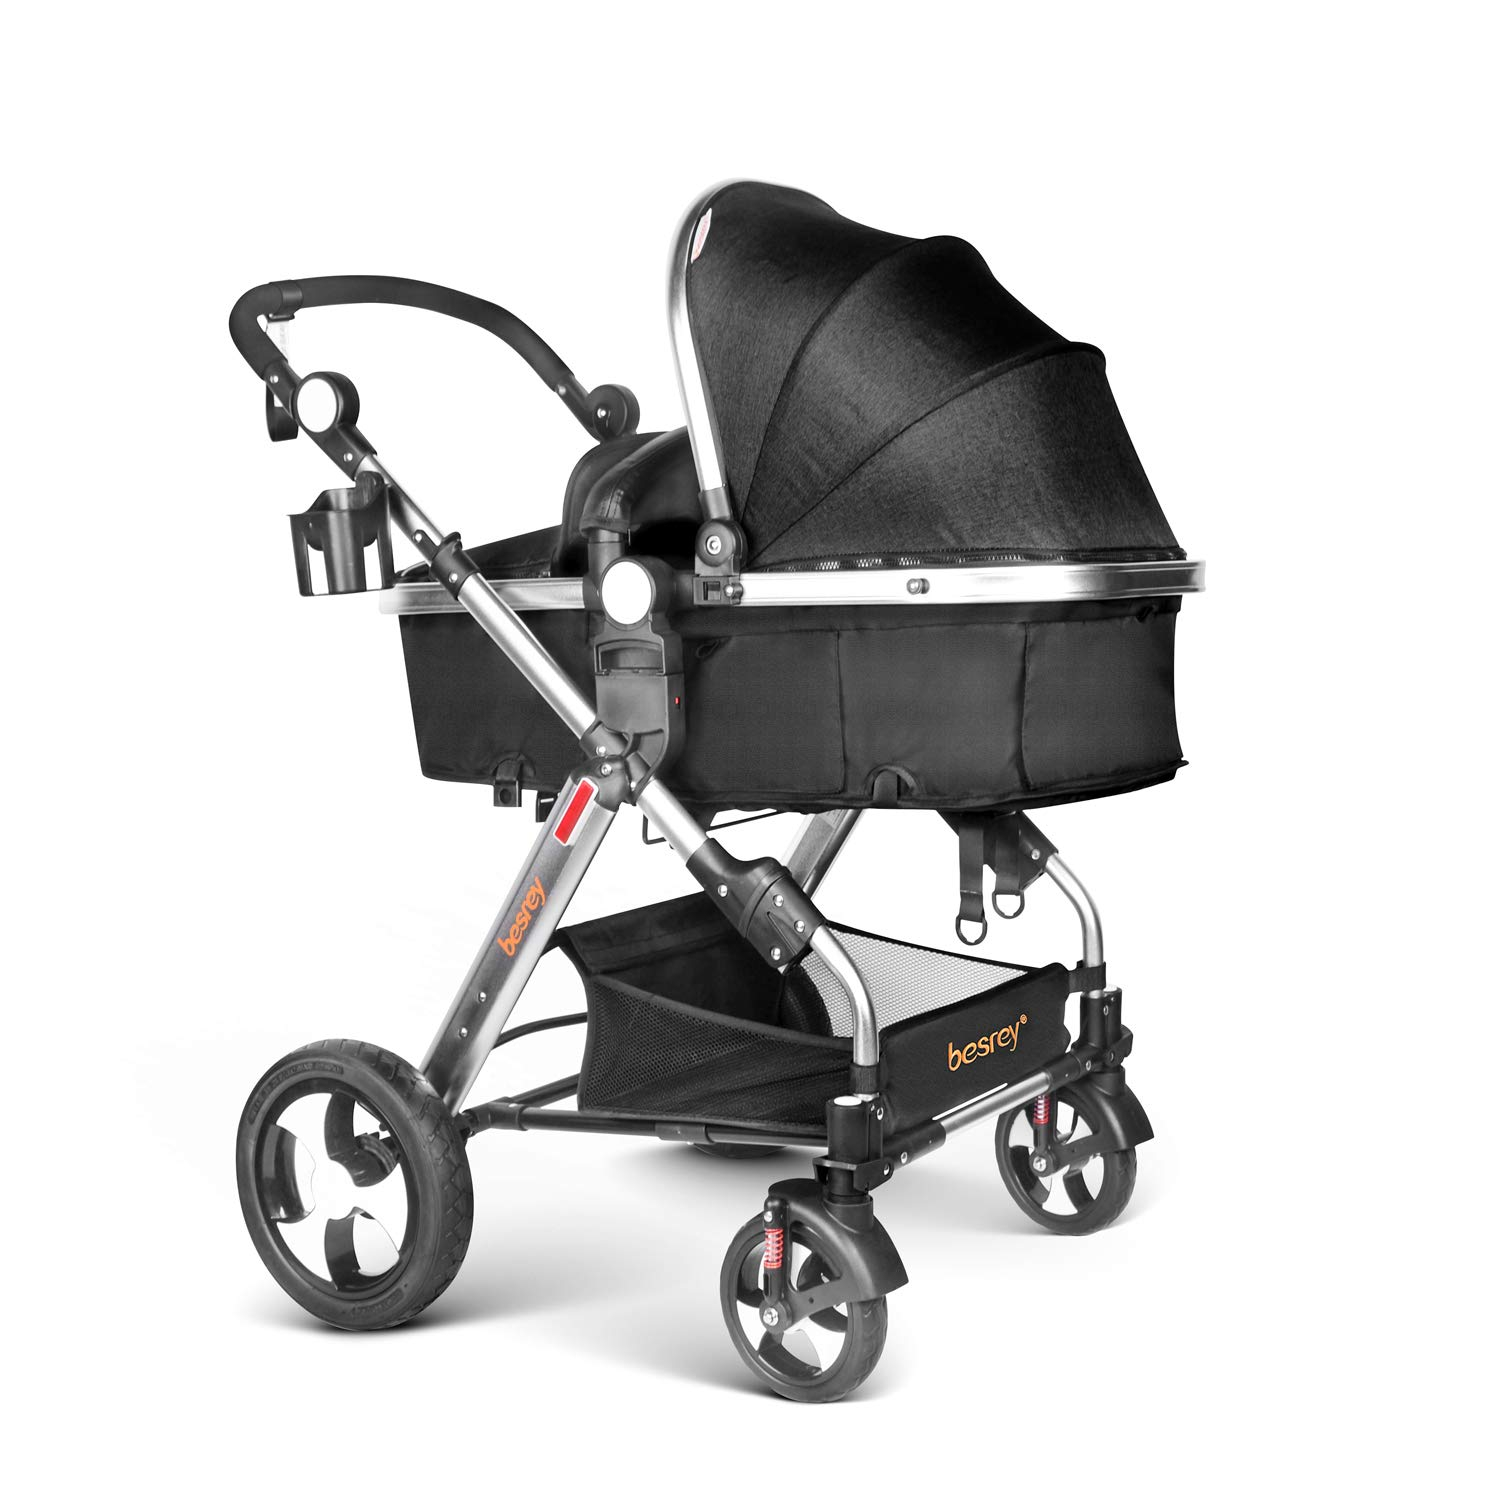 Amazon.com: Infant Baby Stroller for Newborn and Toddler ...